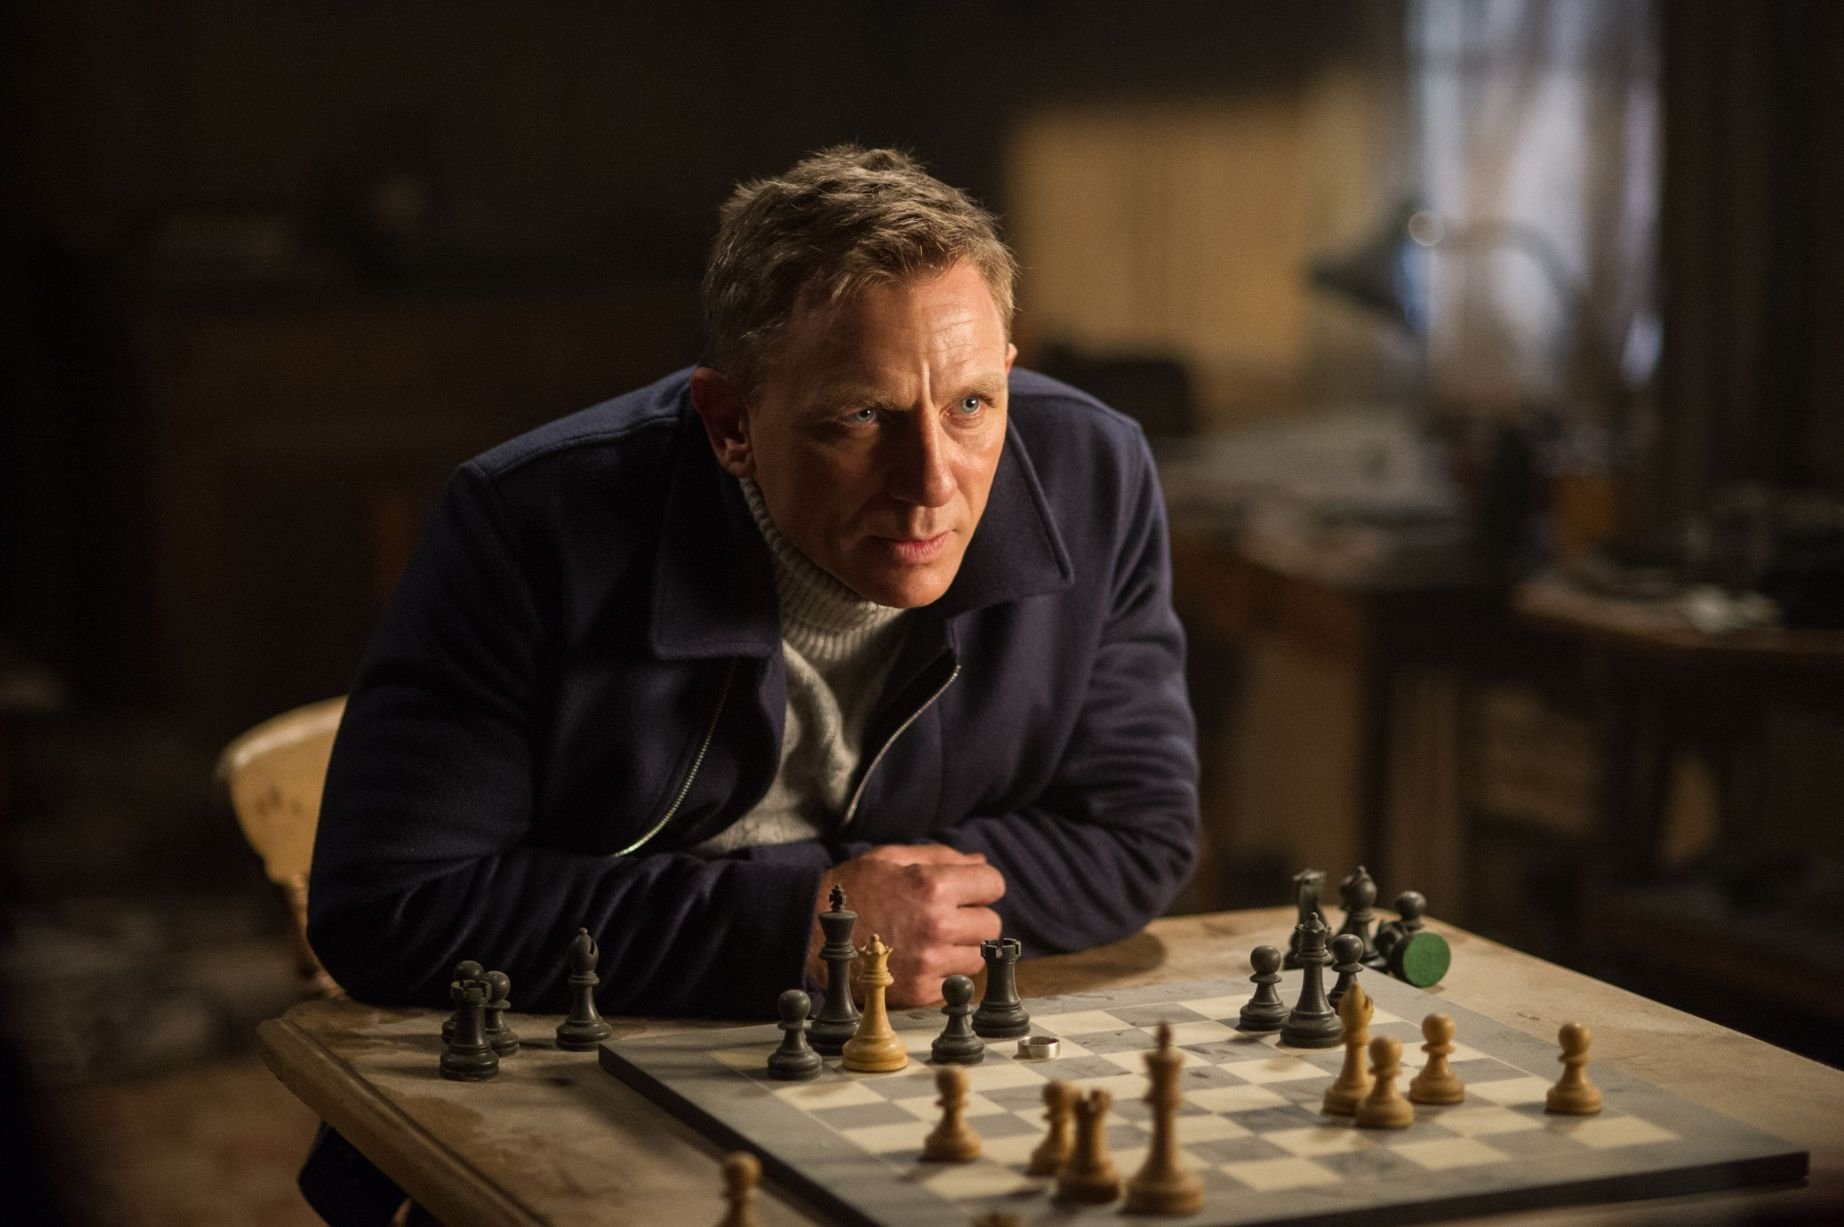 Daniel Craig playing James Bond in the upcoming Spectre